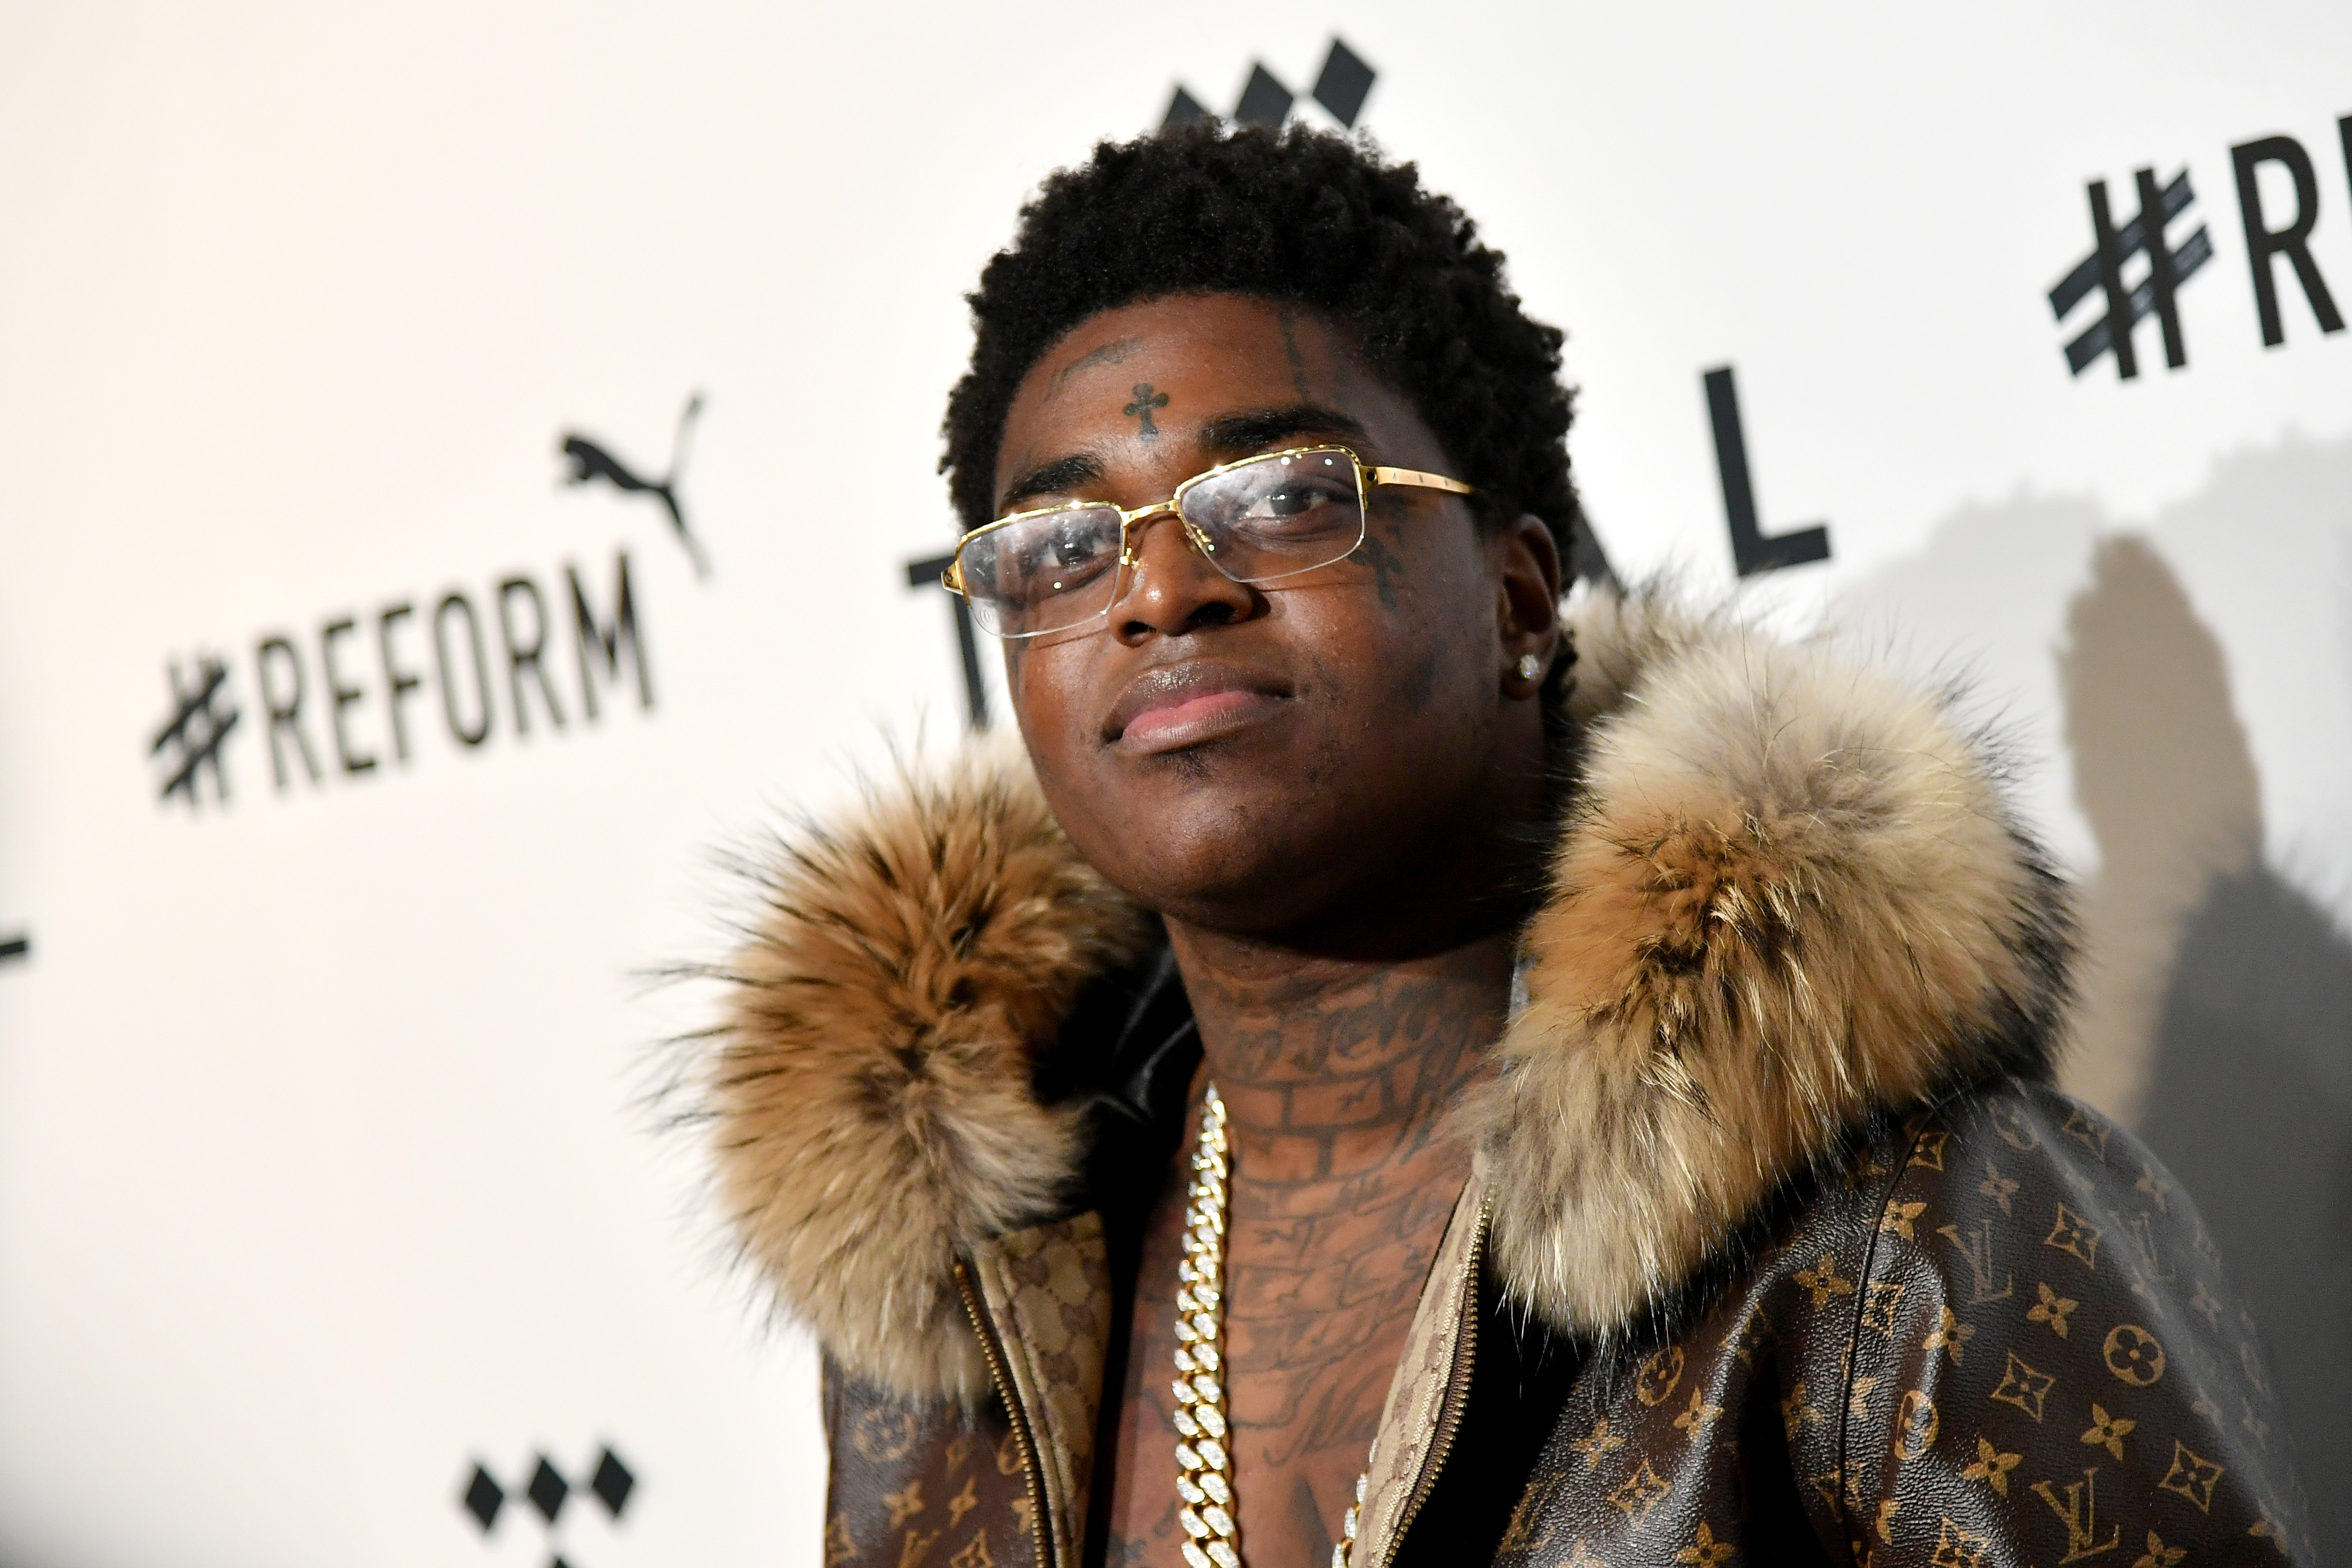 Kodak Black is currently facing time in prison, however, that did not stop him from giving back to his community for the holiday season.